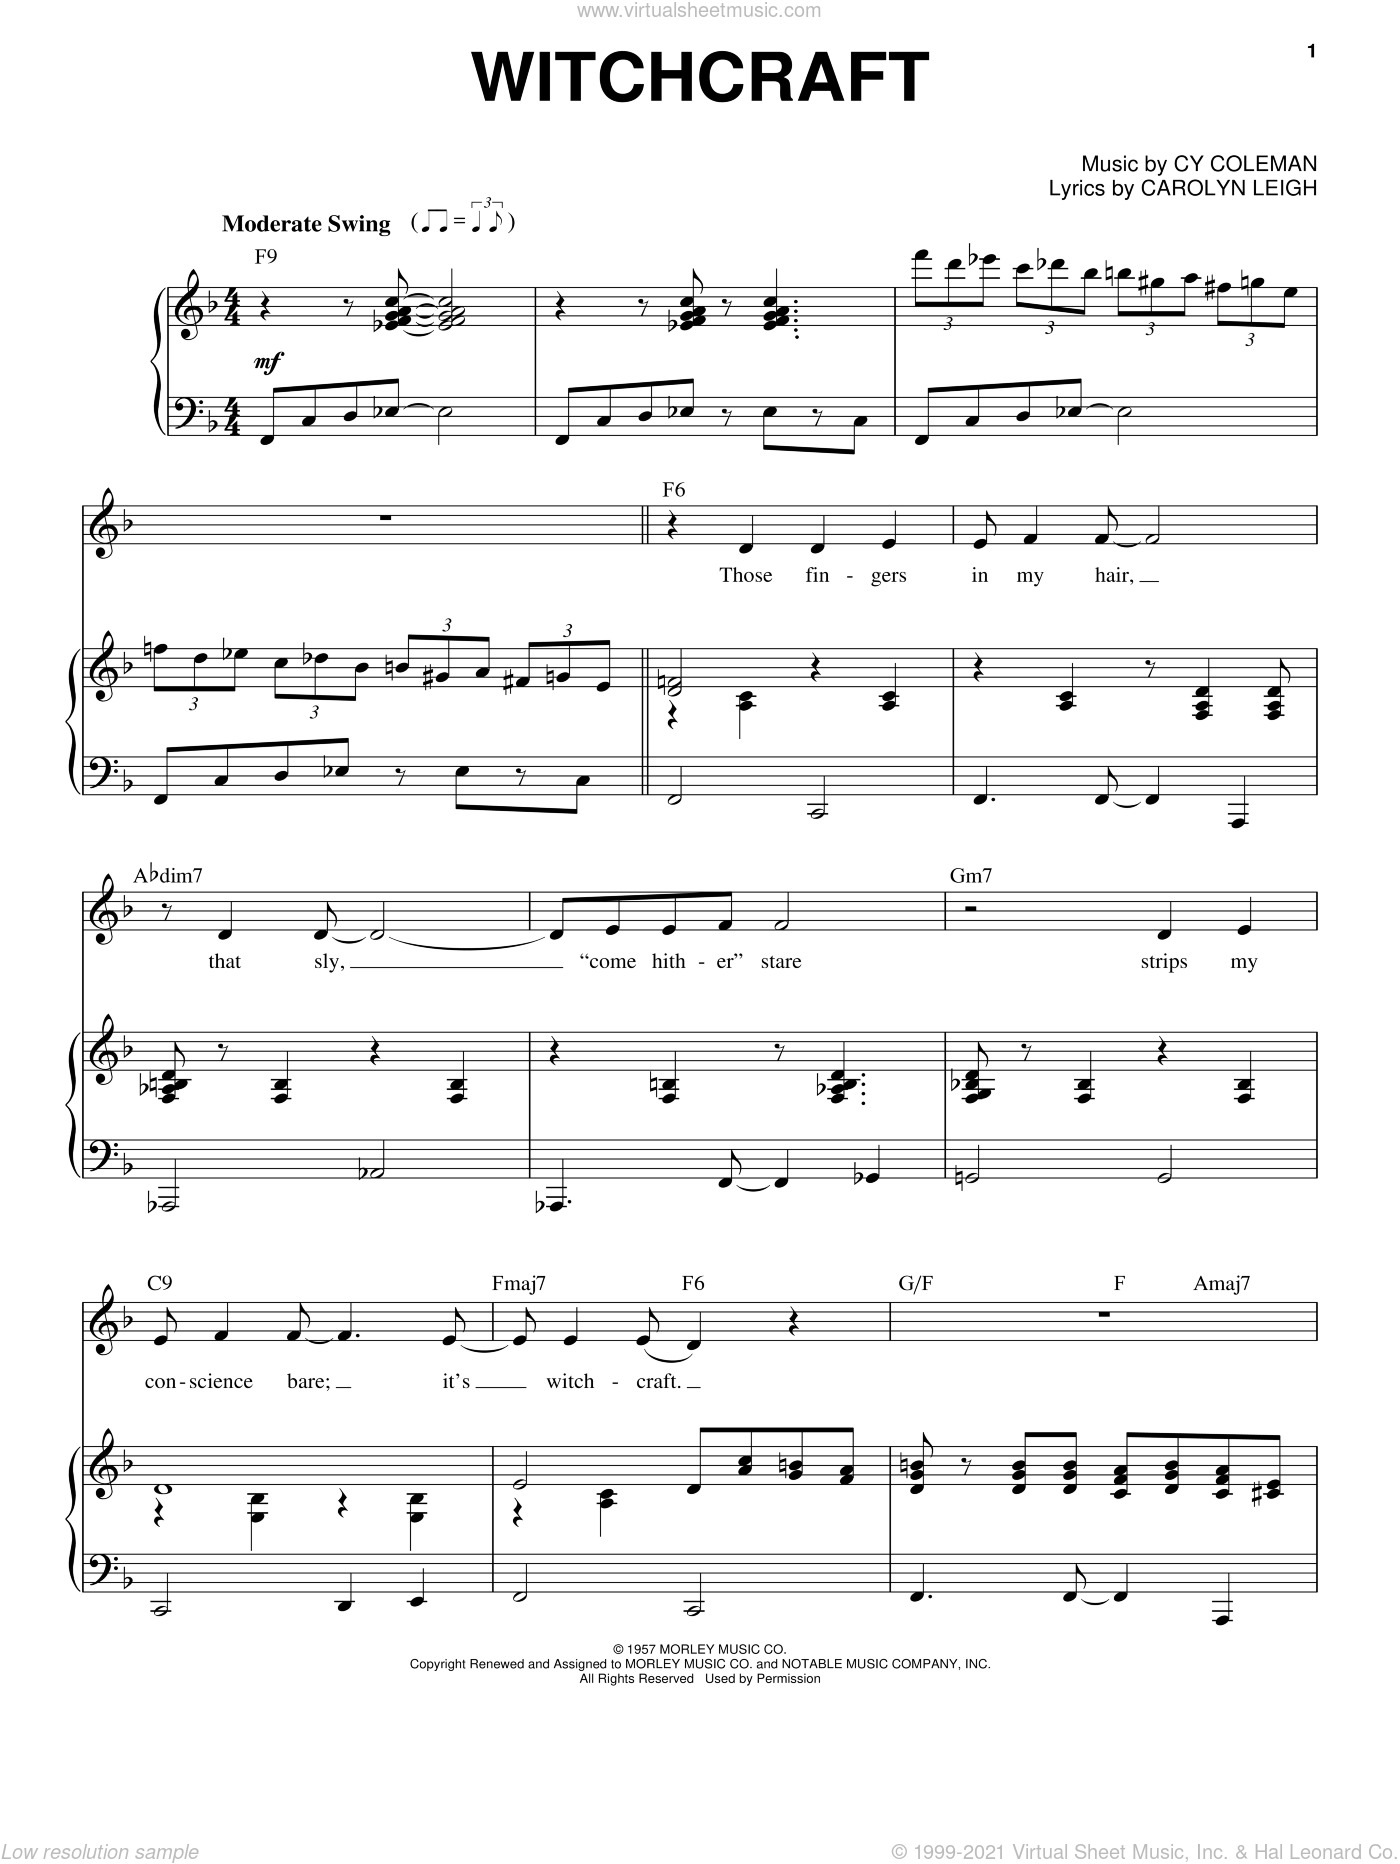 Witchcraft sheet music for voice and piano by Frank Sinatra, Dean Martin, Sammy Davis, Jr., Carolyn Leigh and Cy Coleman, intermediate skill level